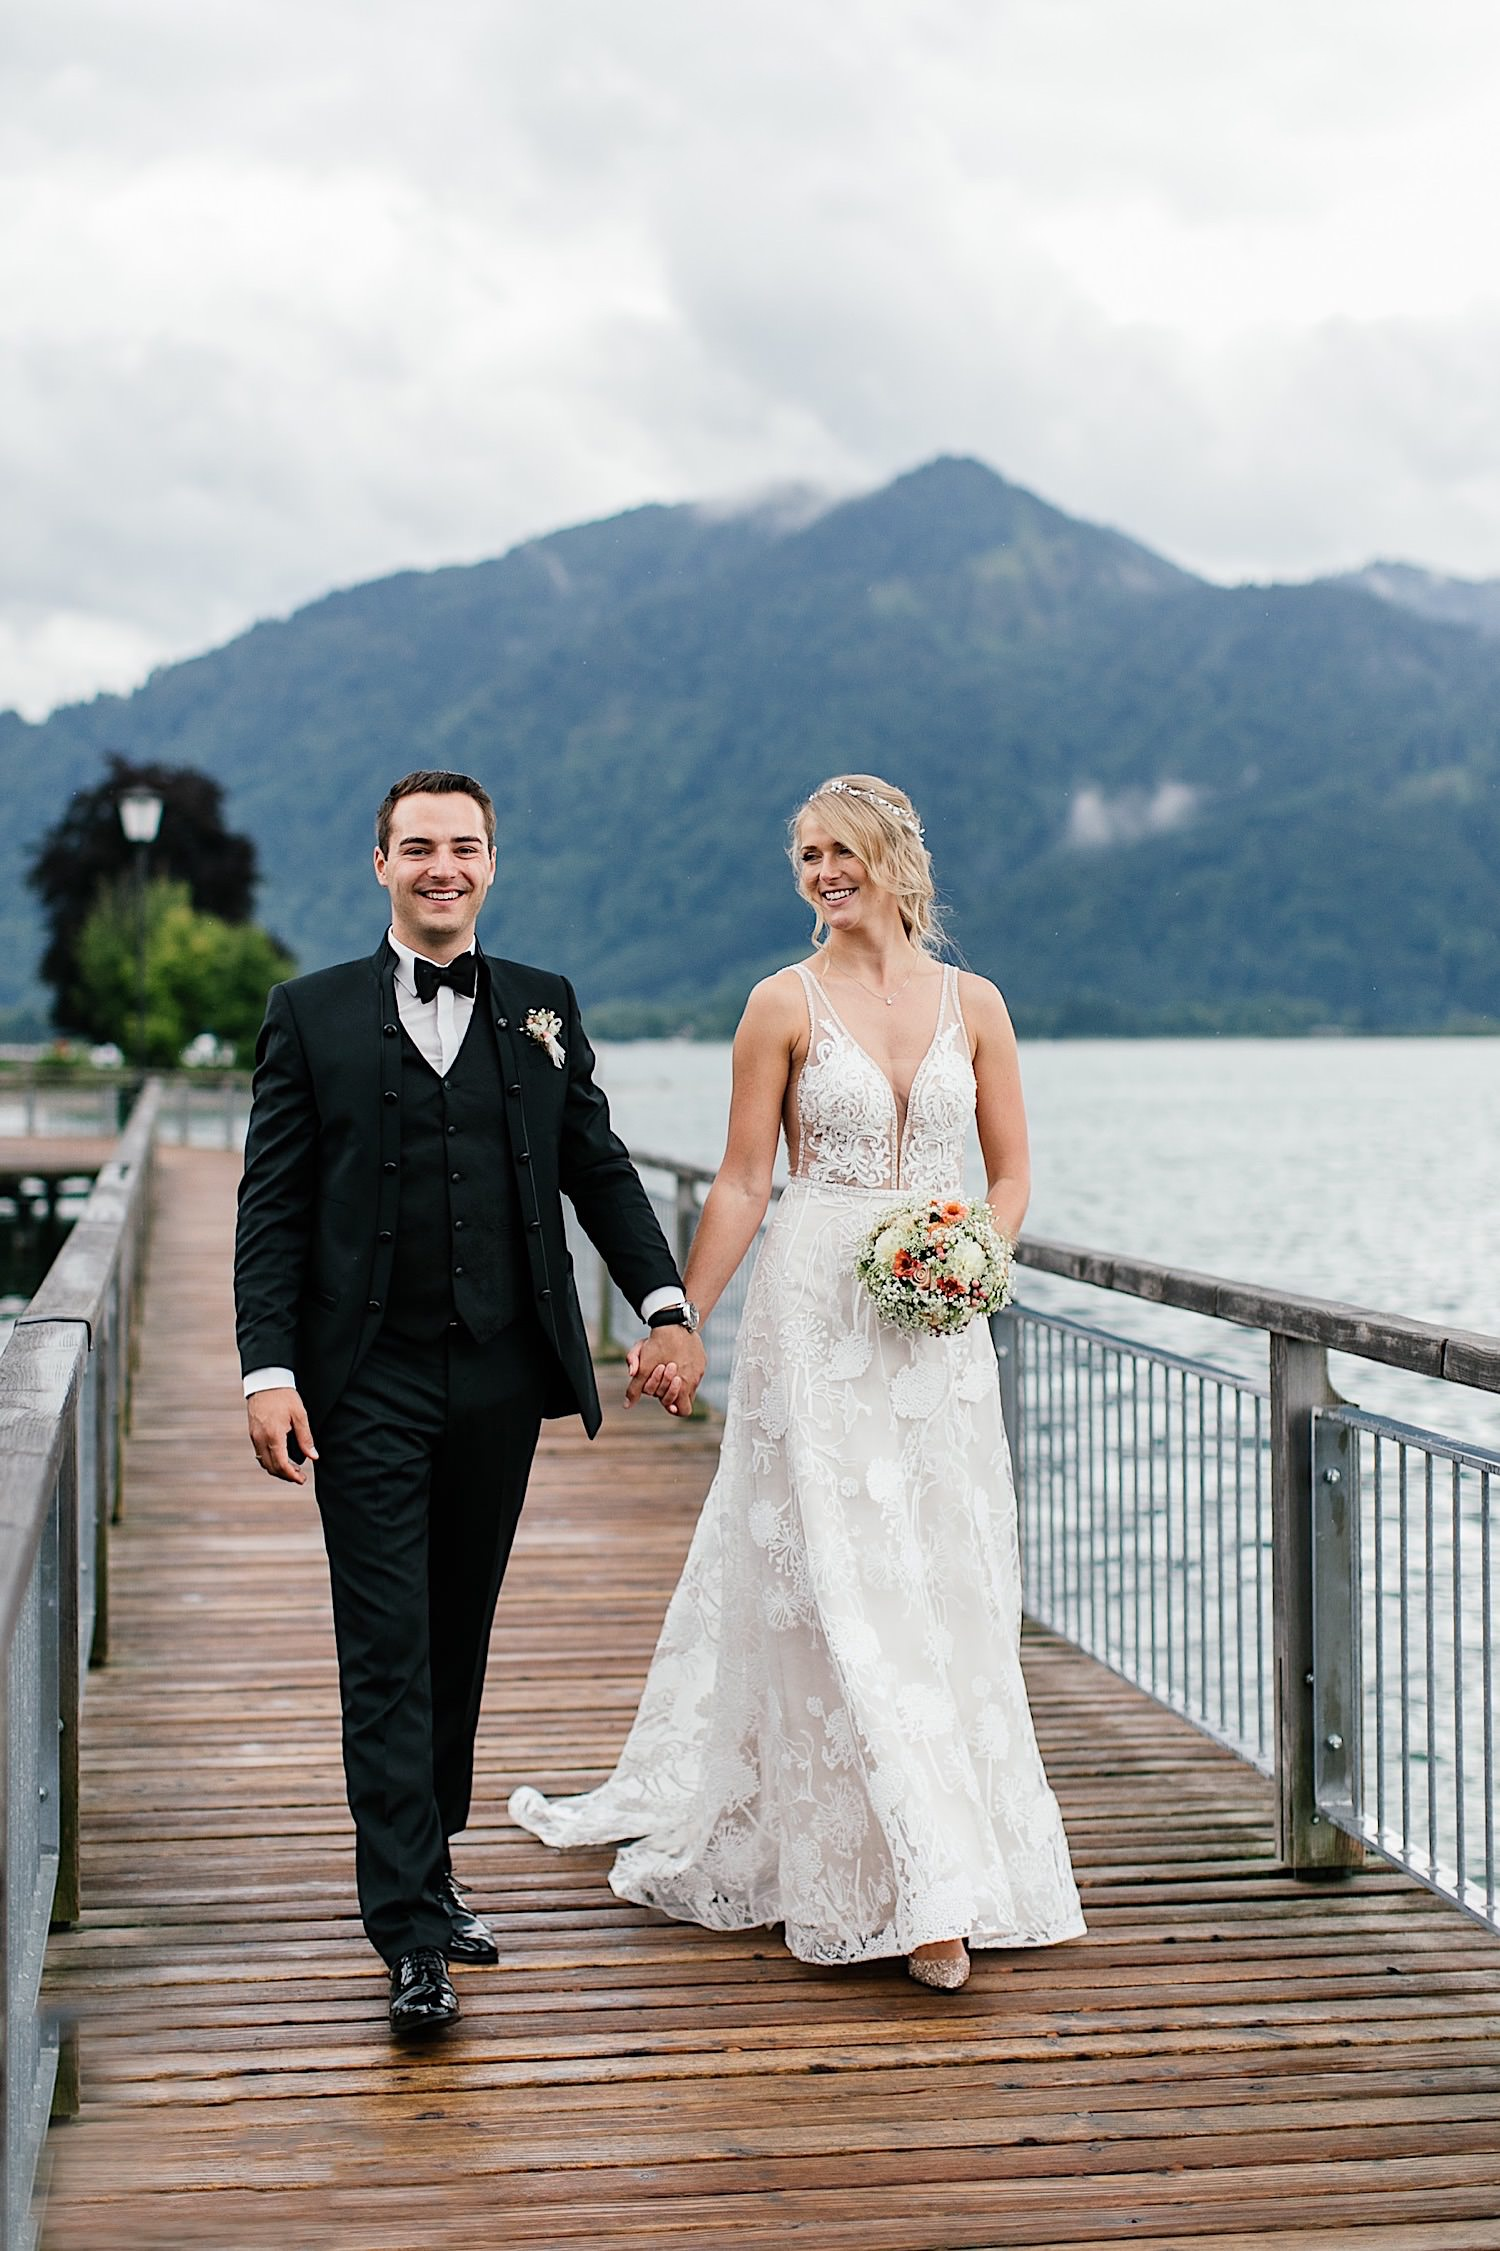 After Wedding Shooting am tegernsee